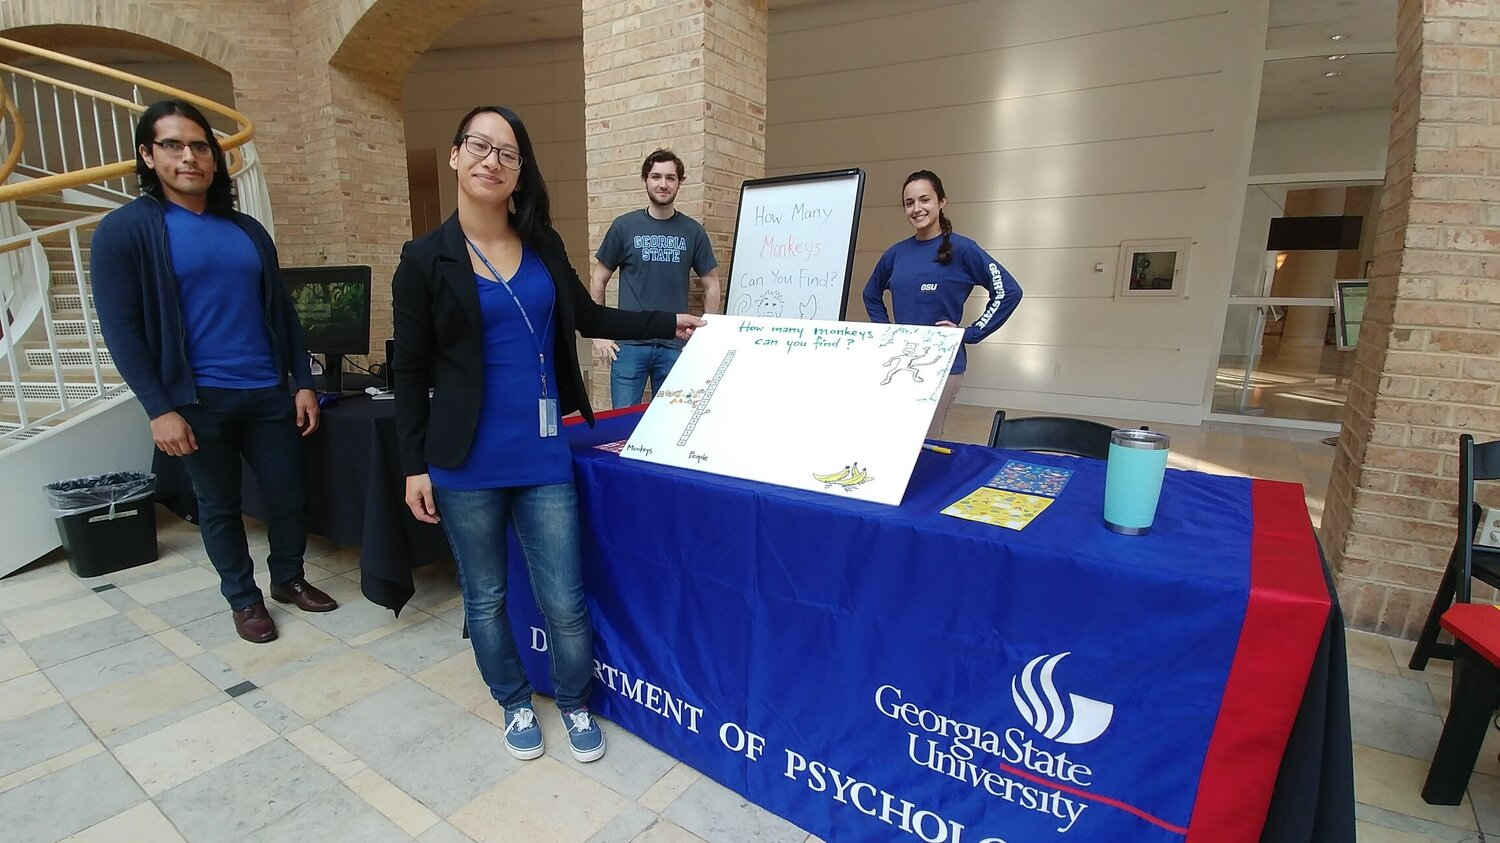 - Students Jhonatan Saldaña, Julia Watzek, Caleb Truscott, and Olivia Tomeo Reilly at the 2017 Fernbank Museum of Natural History's Adventures in Science day, in which families got to participate in our tasks and compare their performance to our non-human primate subjects.